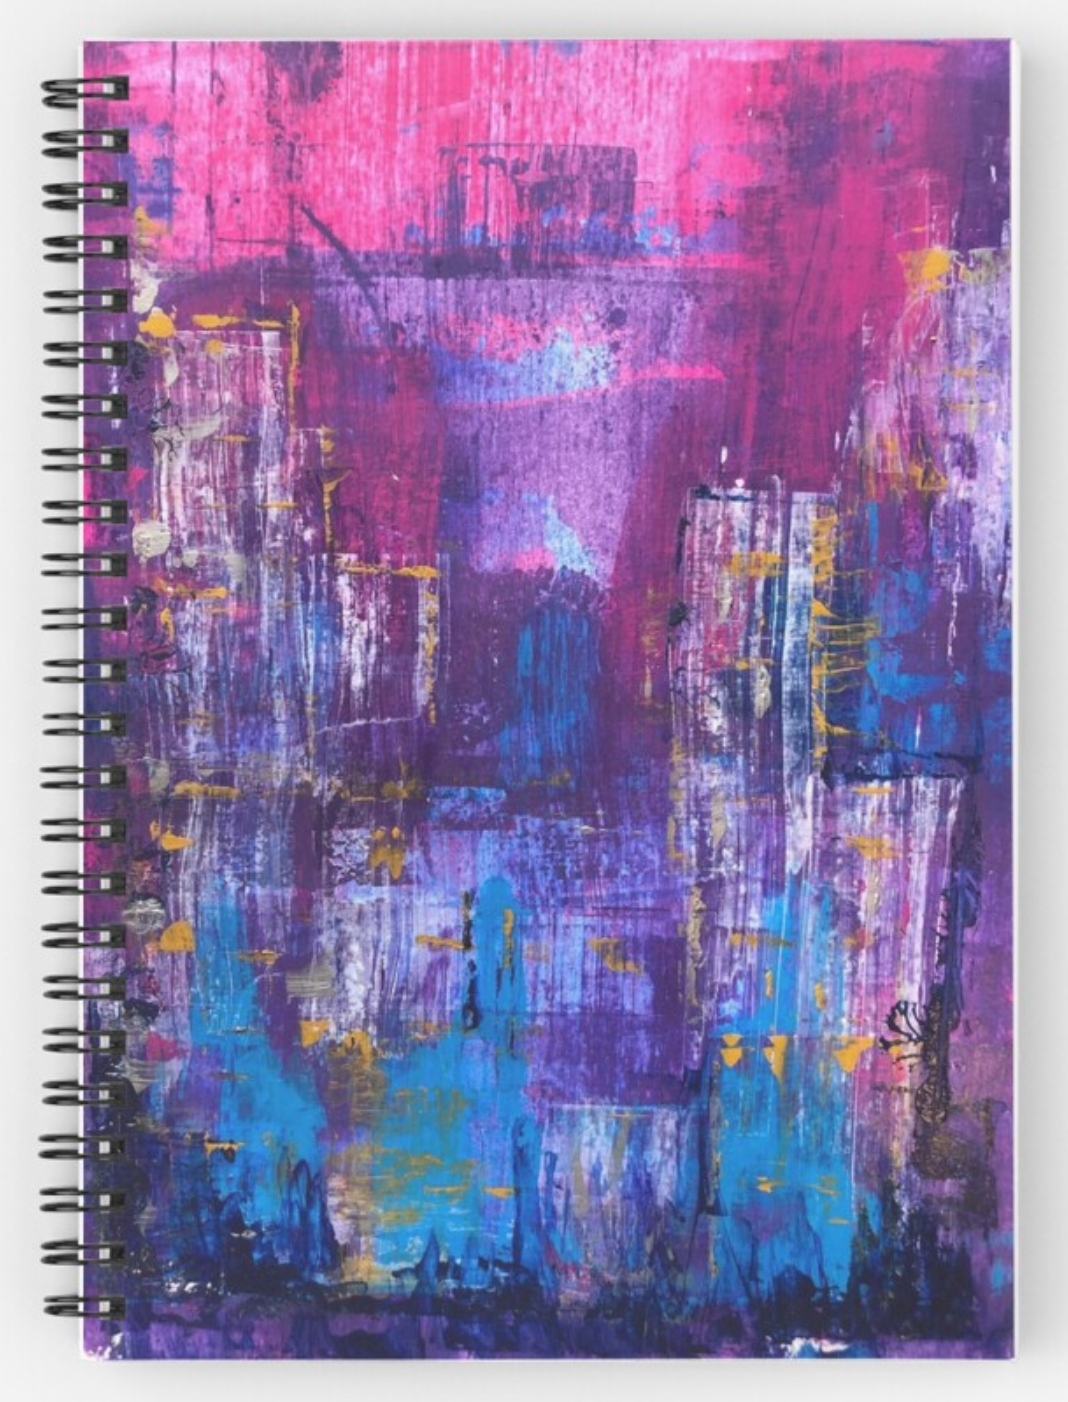 Abstraction - spiral-bound notepad